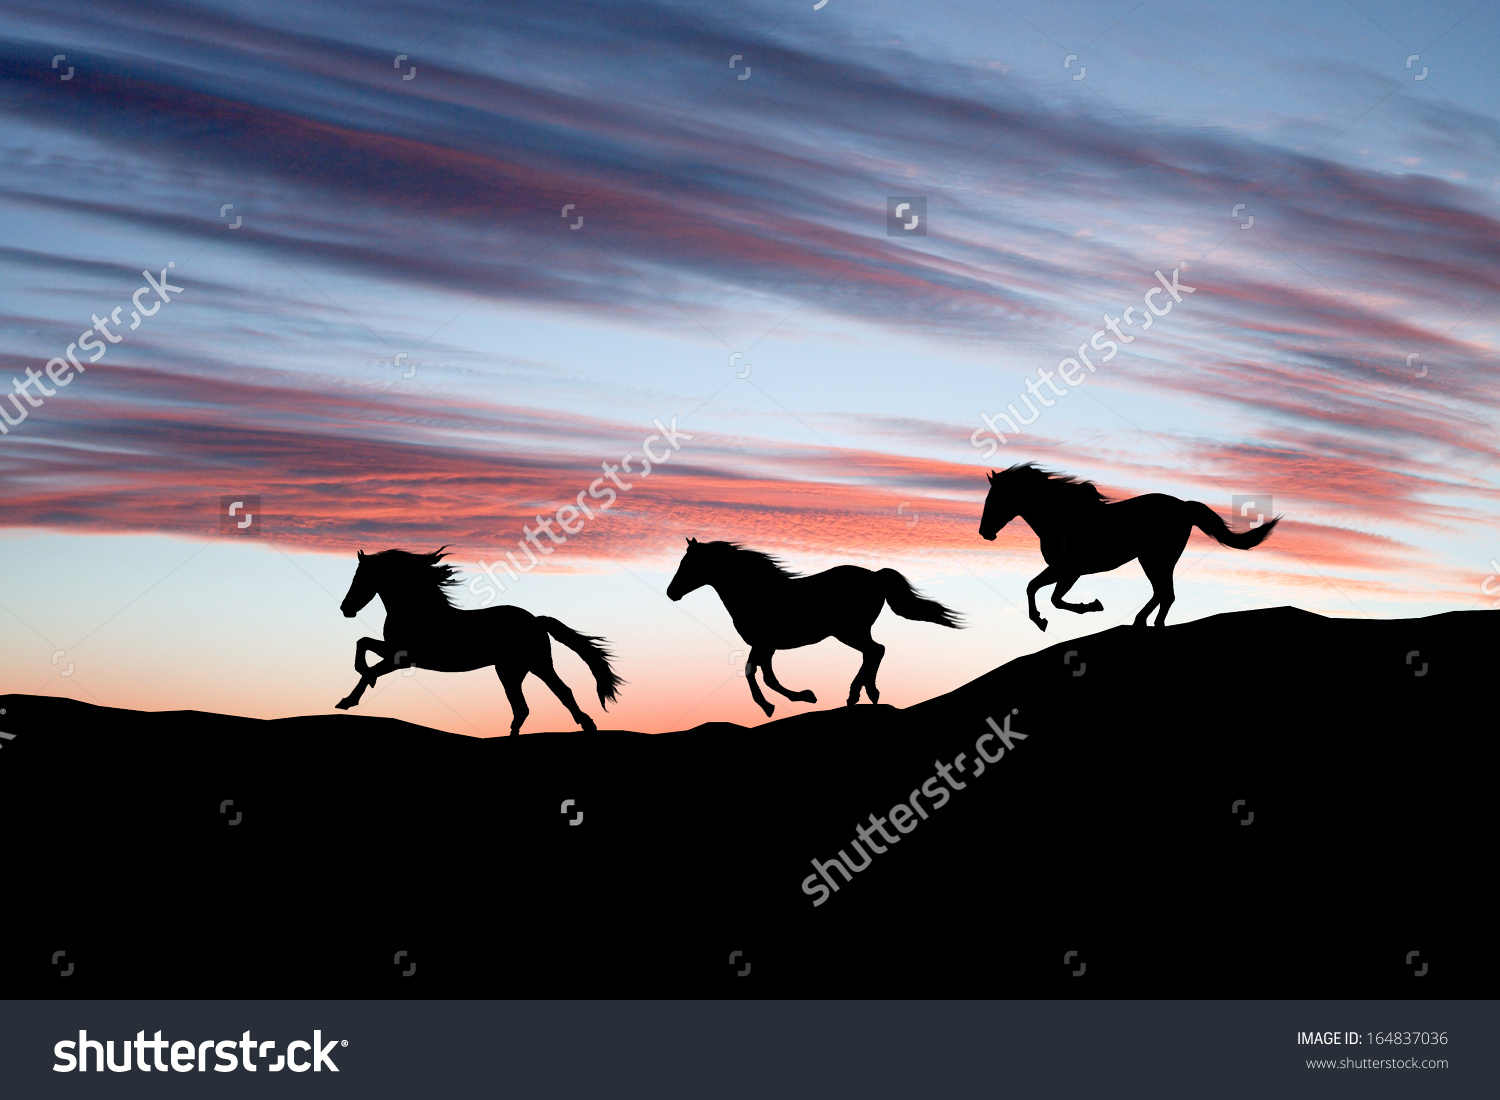 galloping